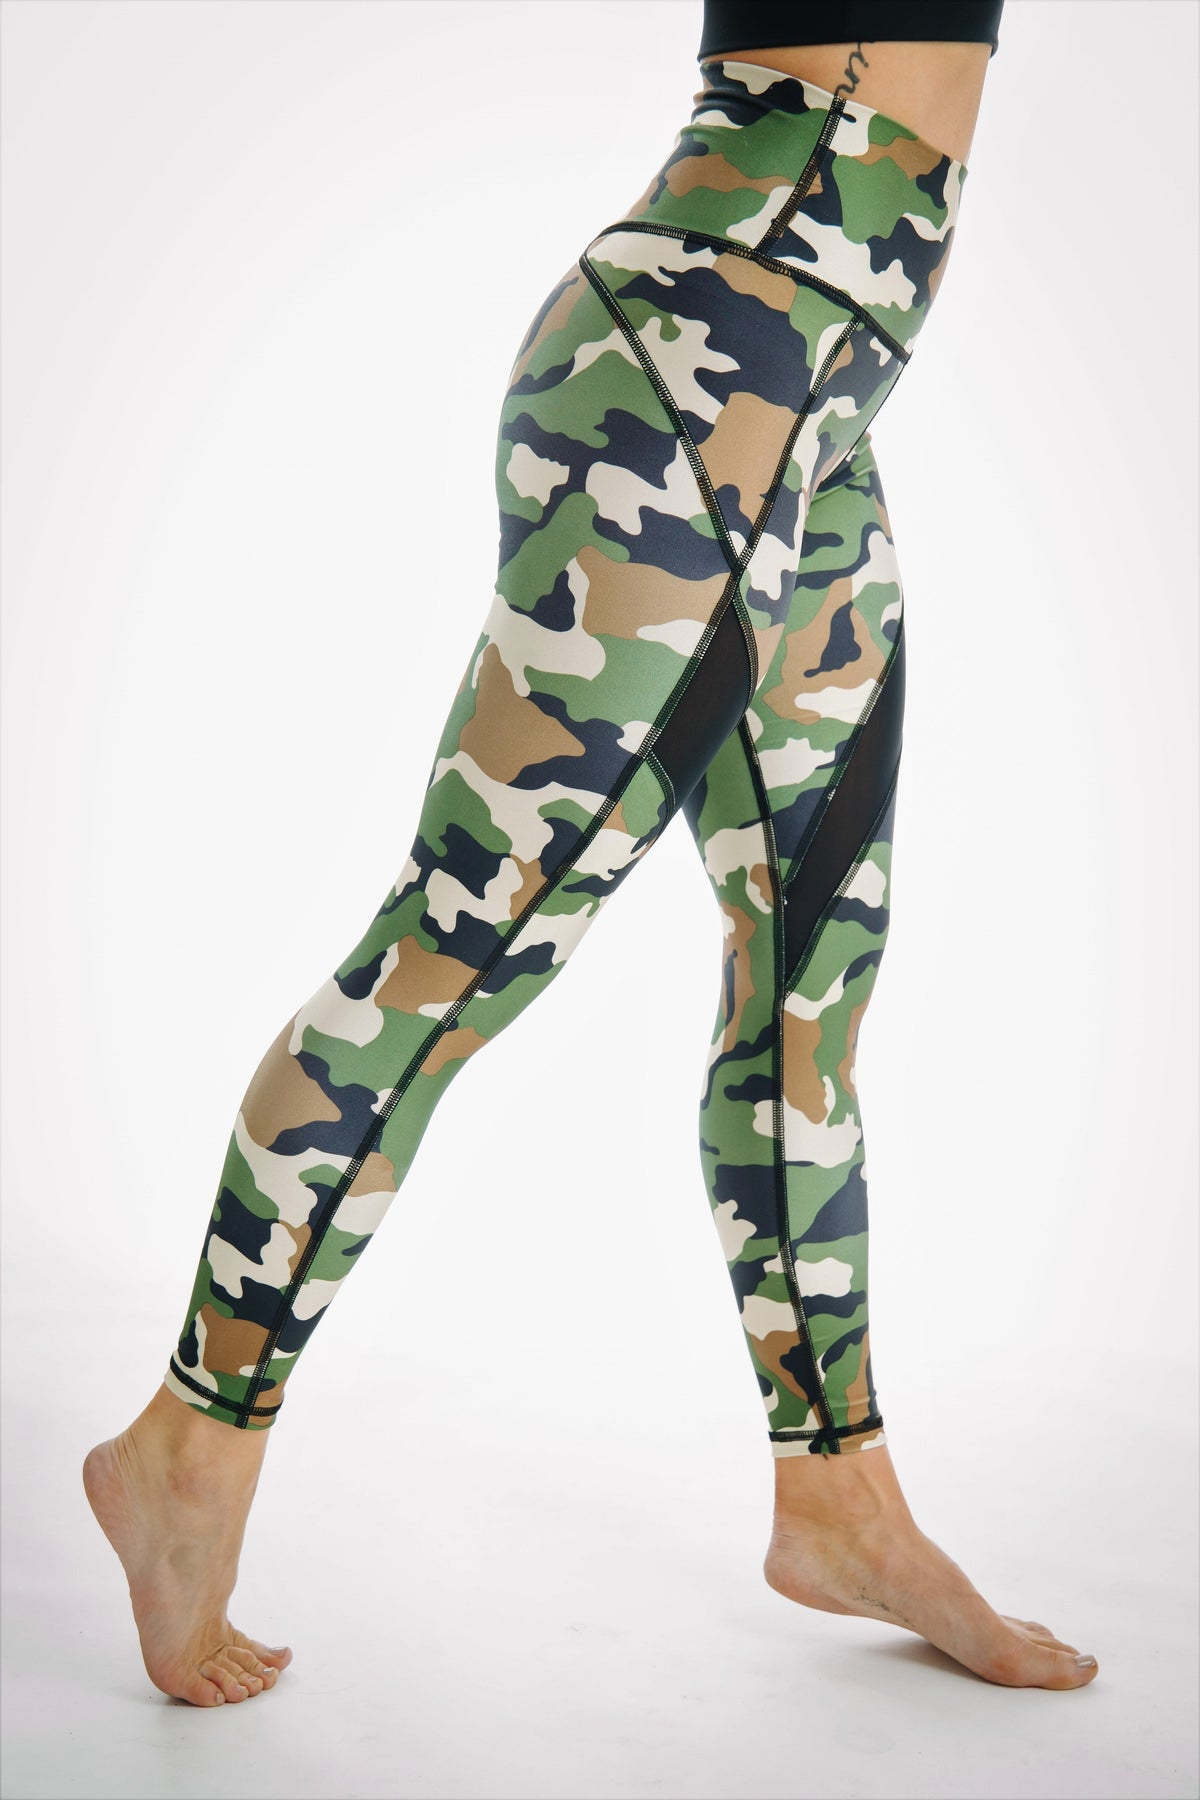 camo mesh leggings tummy support high waisted for gym